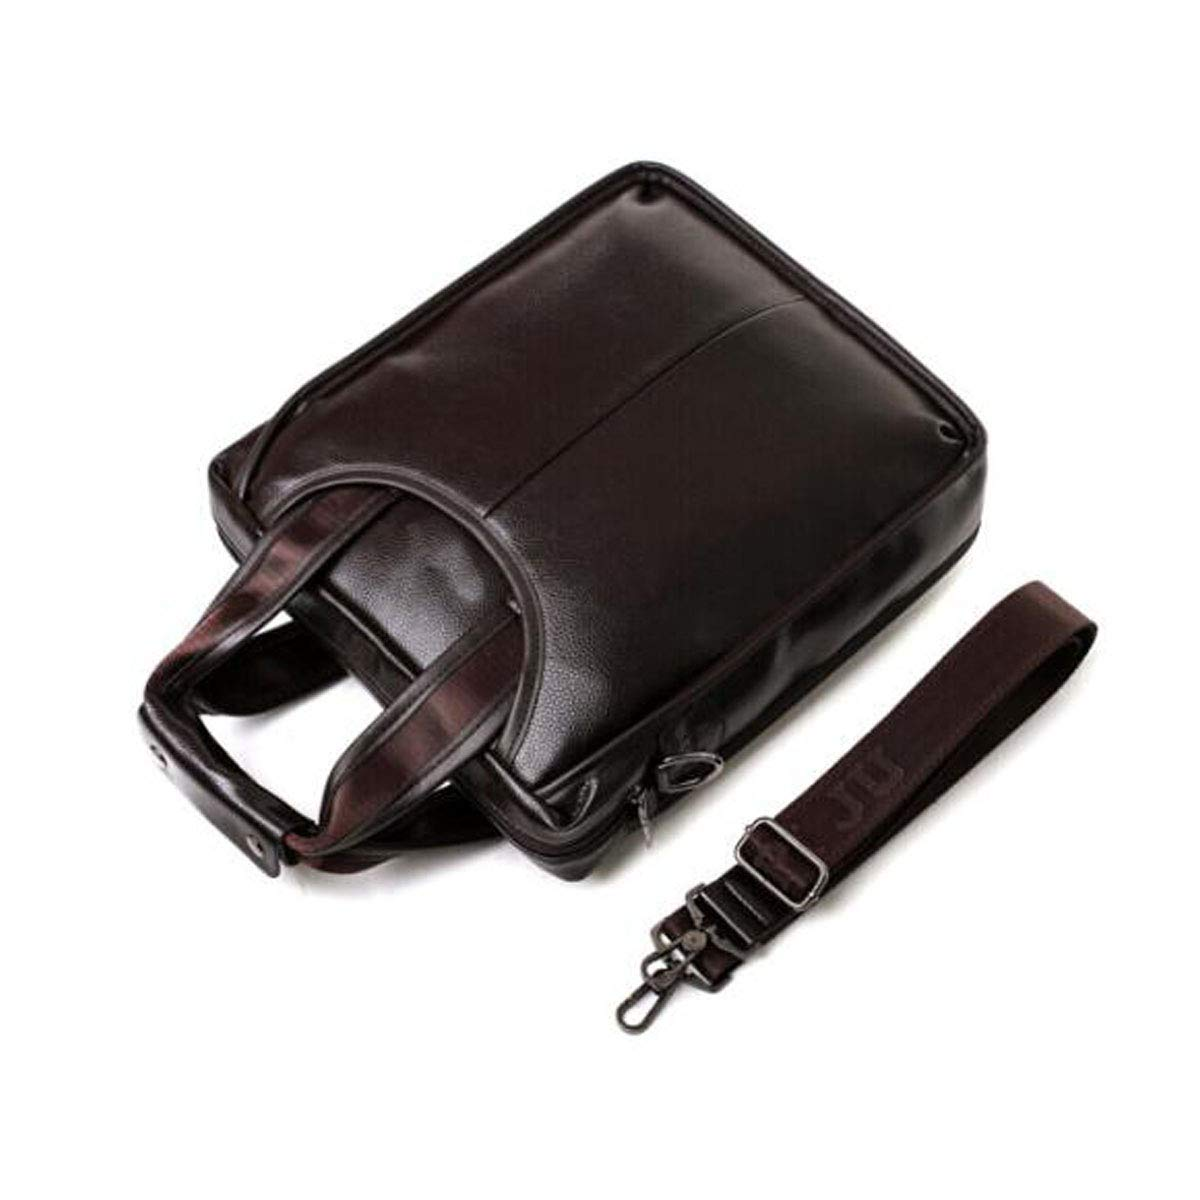 Portable Large-Capacity Leather Mens Bag Brown Chenjinxiang Briefcase New Boutique Mens Handbag Color : Brown Size: 279.531cm Concise